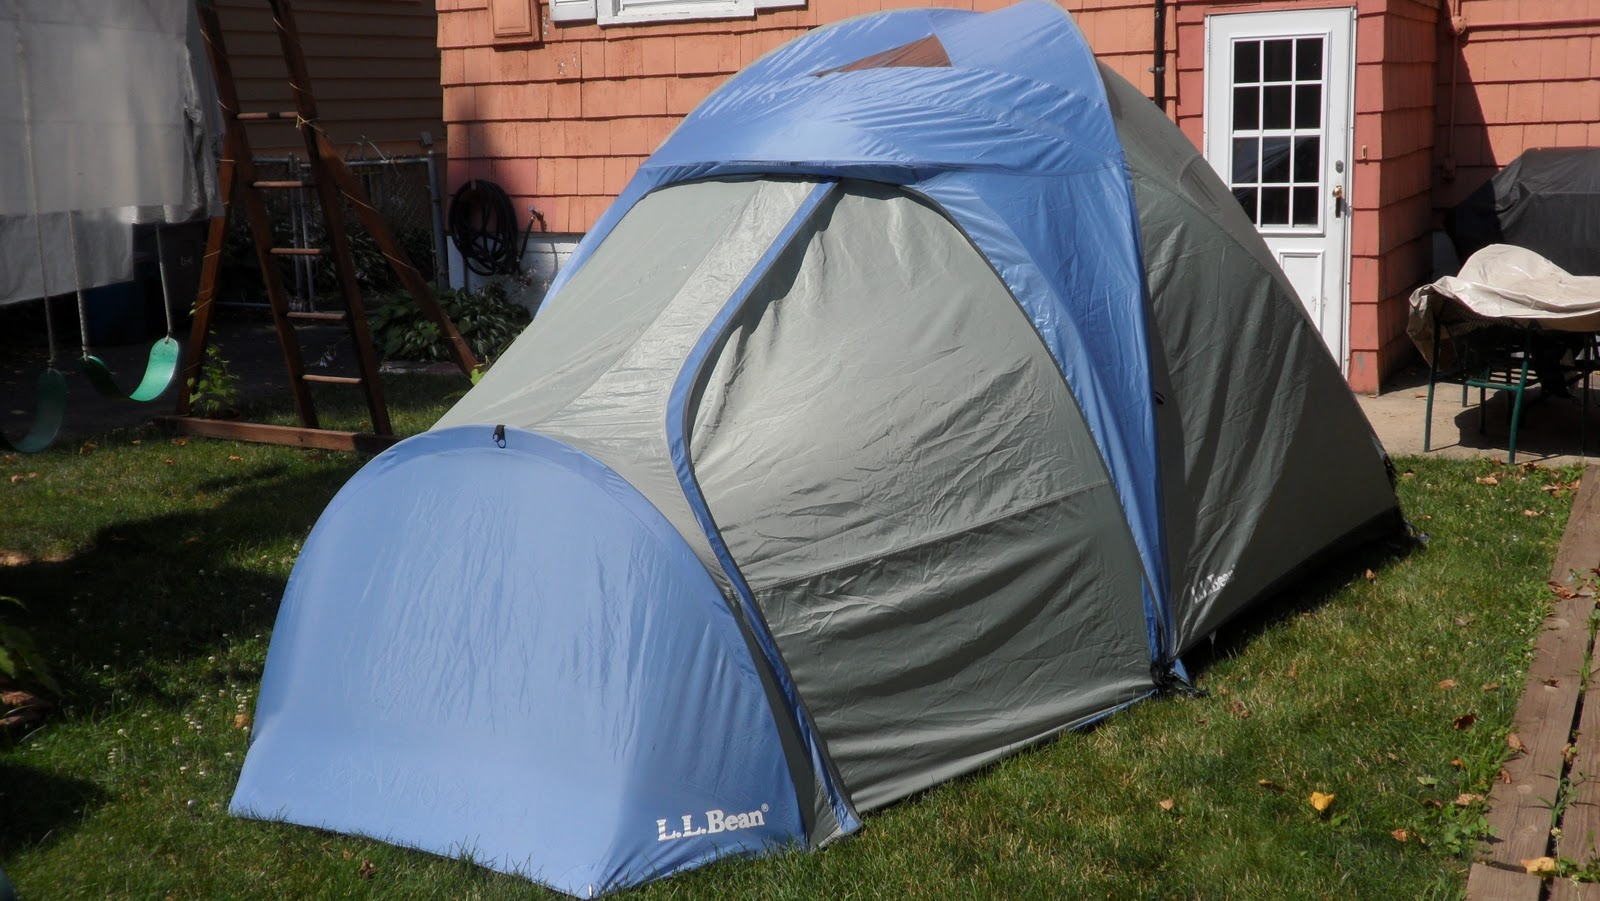 For sale is a 10+ year old LL Bean 4 person dome tent (Model LLB L) in very very good condition. Probably used 10 - 15 times and has been stored inside and unused for the lest few years.